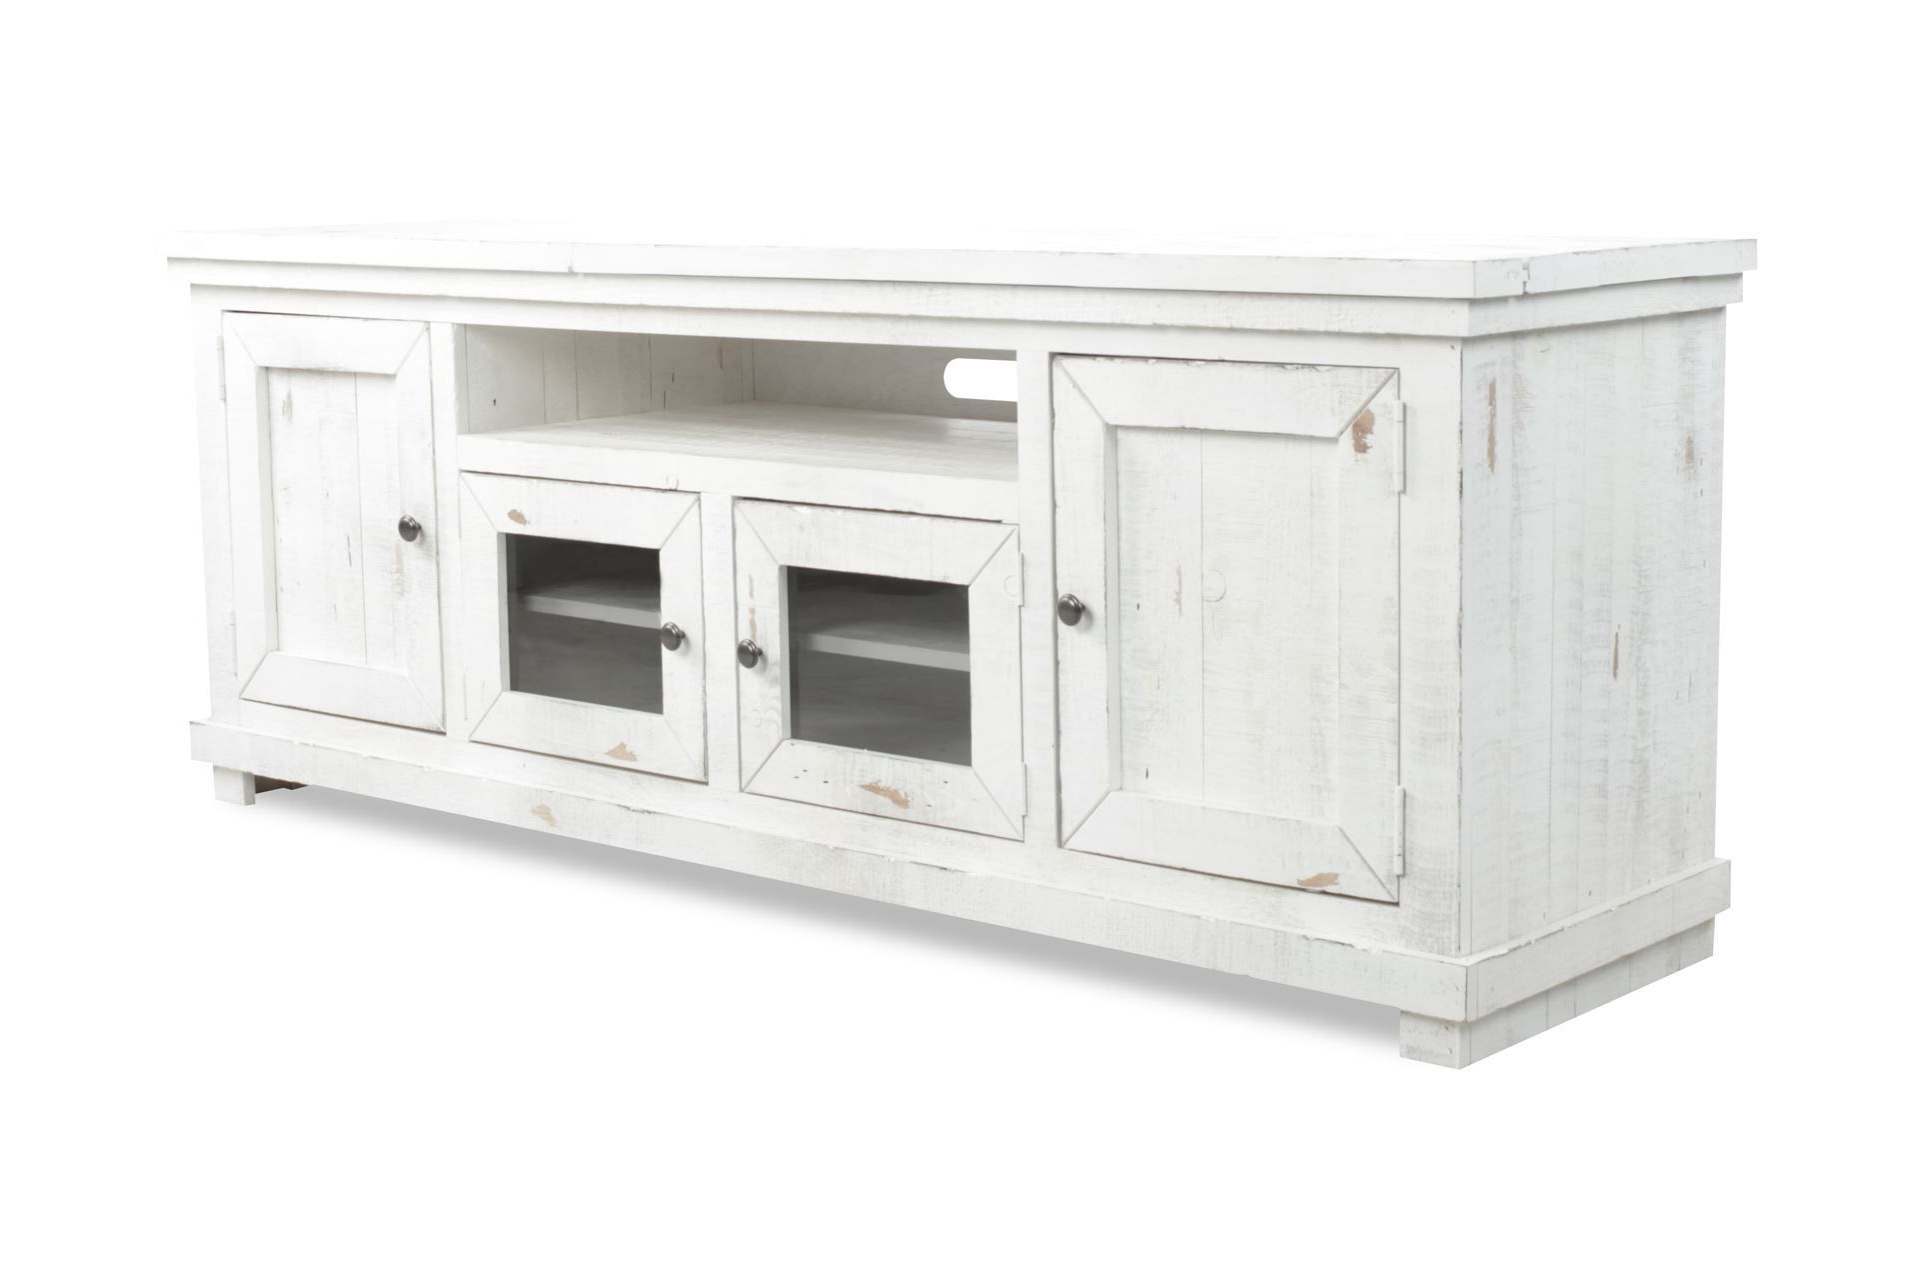 Sinclair White 74 Inch Tv Stand | Home Ideas | Pinterest | Living Throughout Sinclair Grey 68 Inch Tv Stands (View 20 of 20)